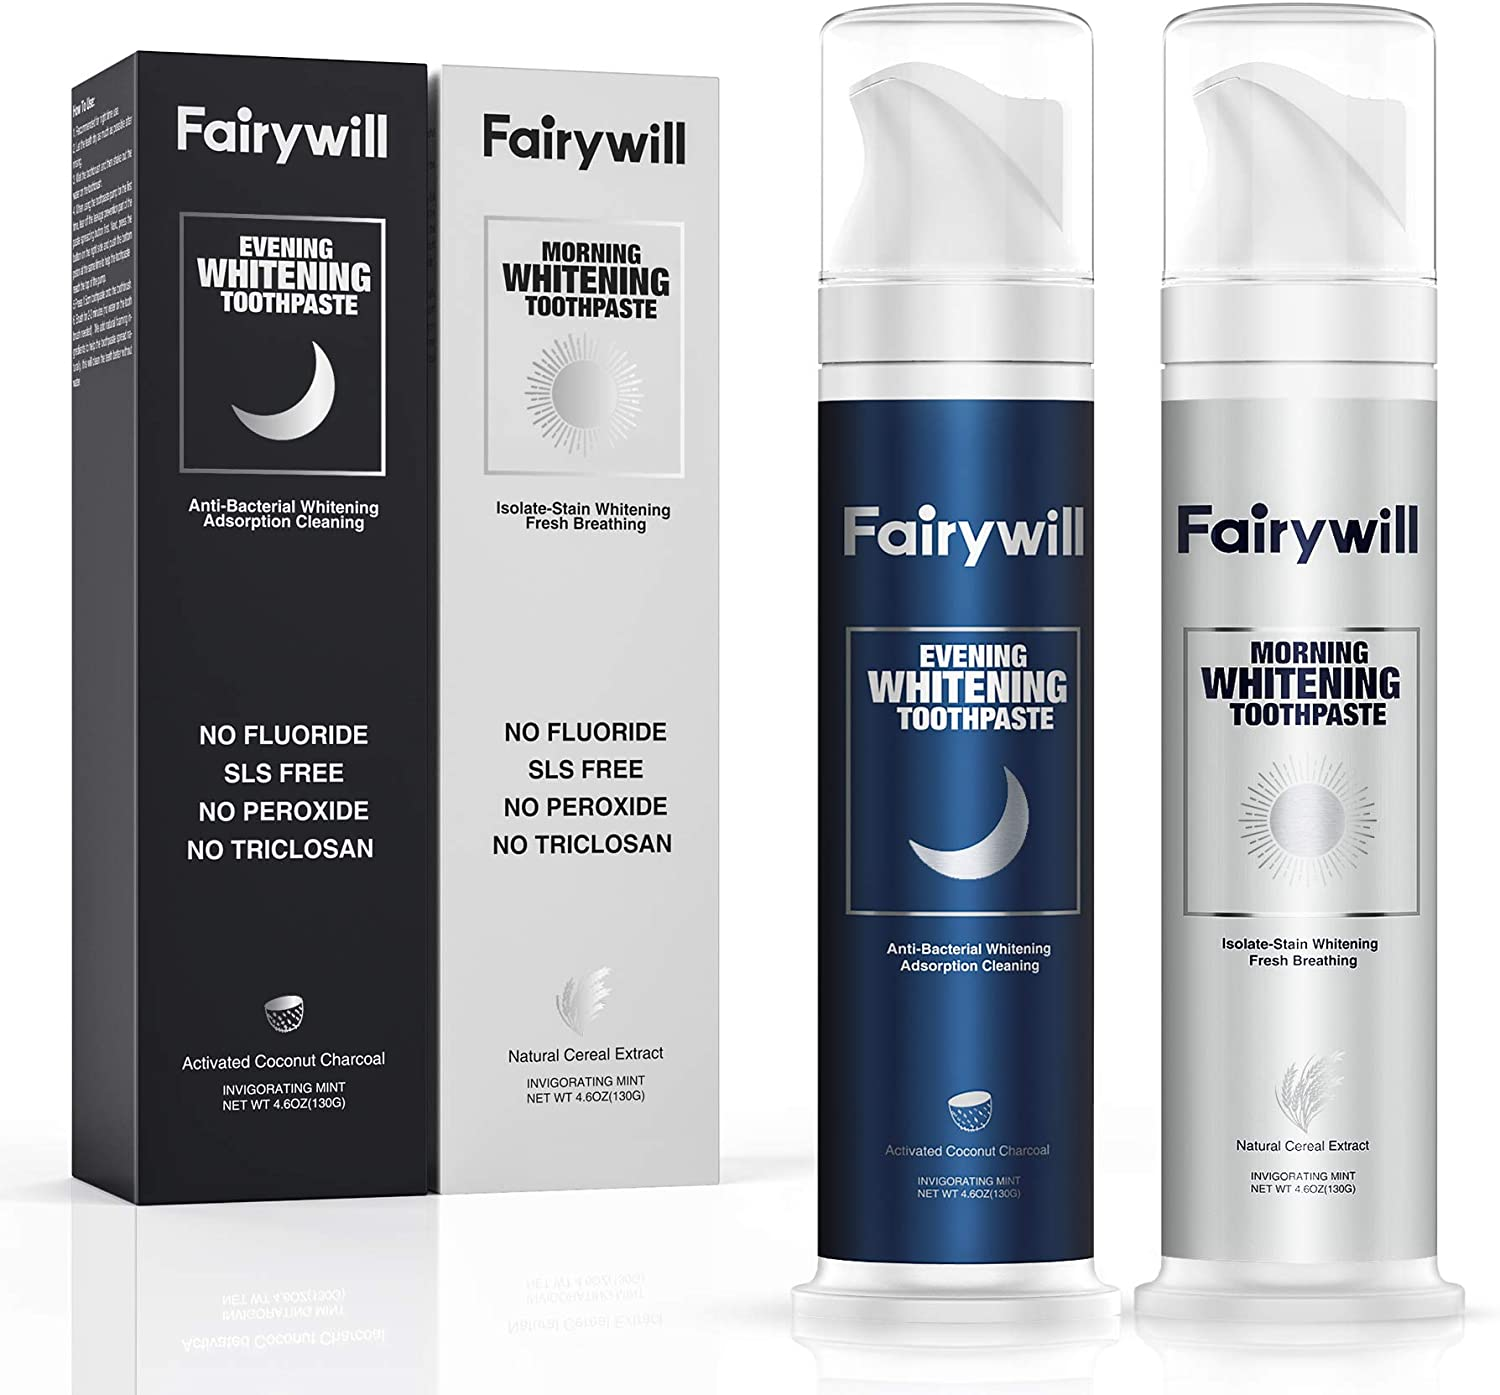 Natural Whitening Toothpaste Sets, Activated Charcoal Teeth Whitening Toothpaste Removes Stains, Fairywill Whitening Toothpaste Freshens Breath, No Fluoride, Nature Organic Teeth Whitener, 2 Pack